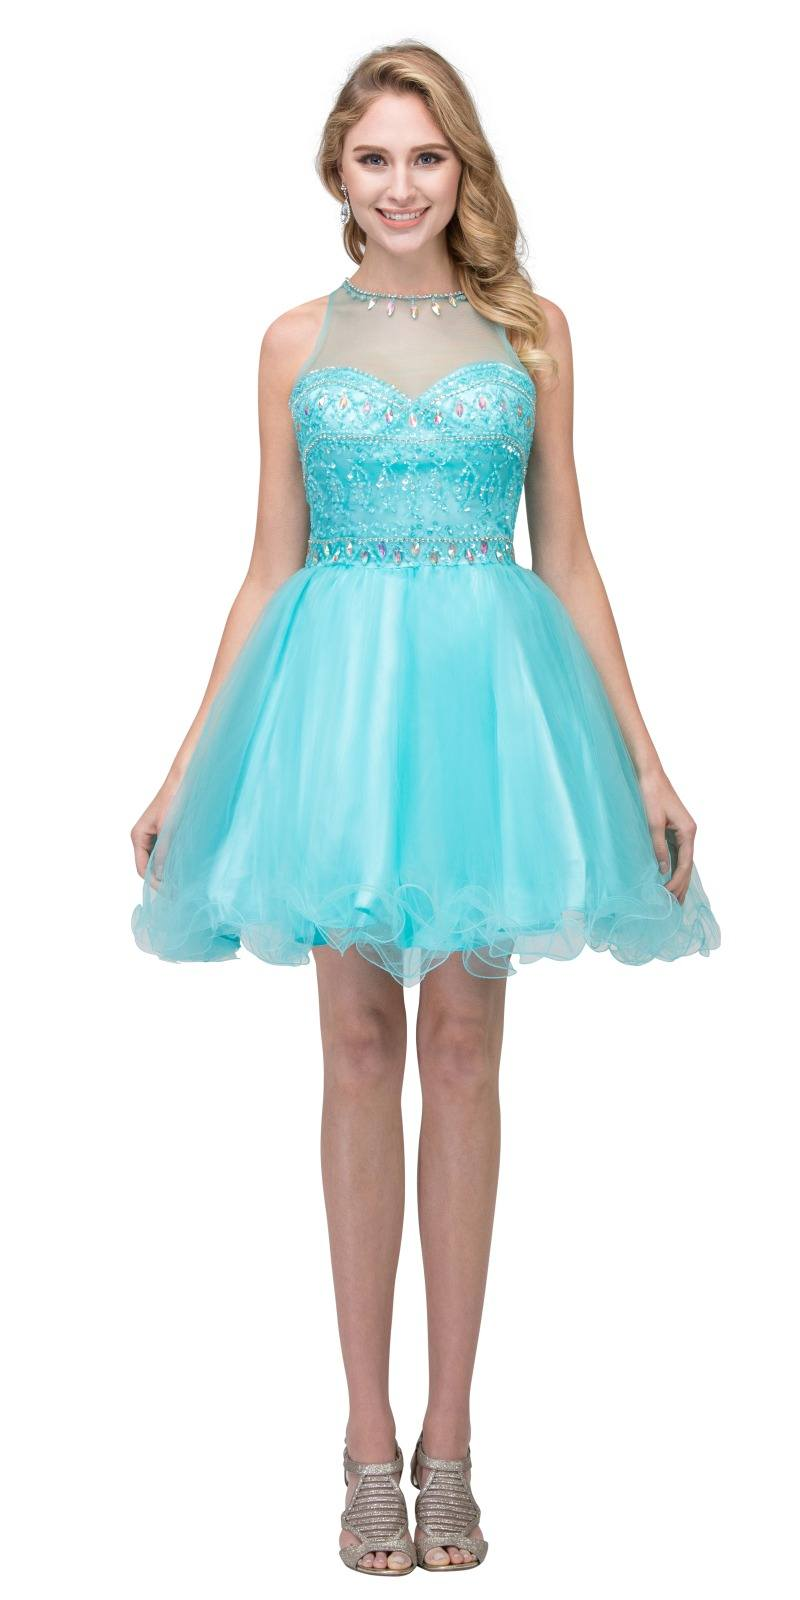 Starbox USA 17244 Silver Beaded Short Prom Dress with Illusion ...